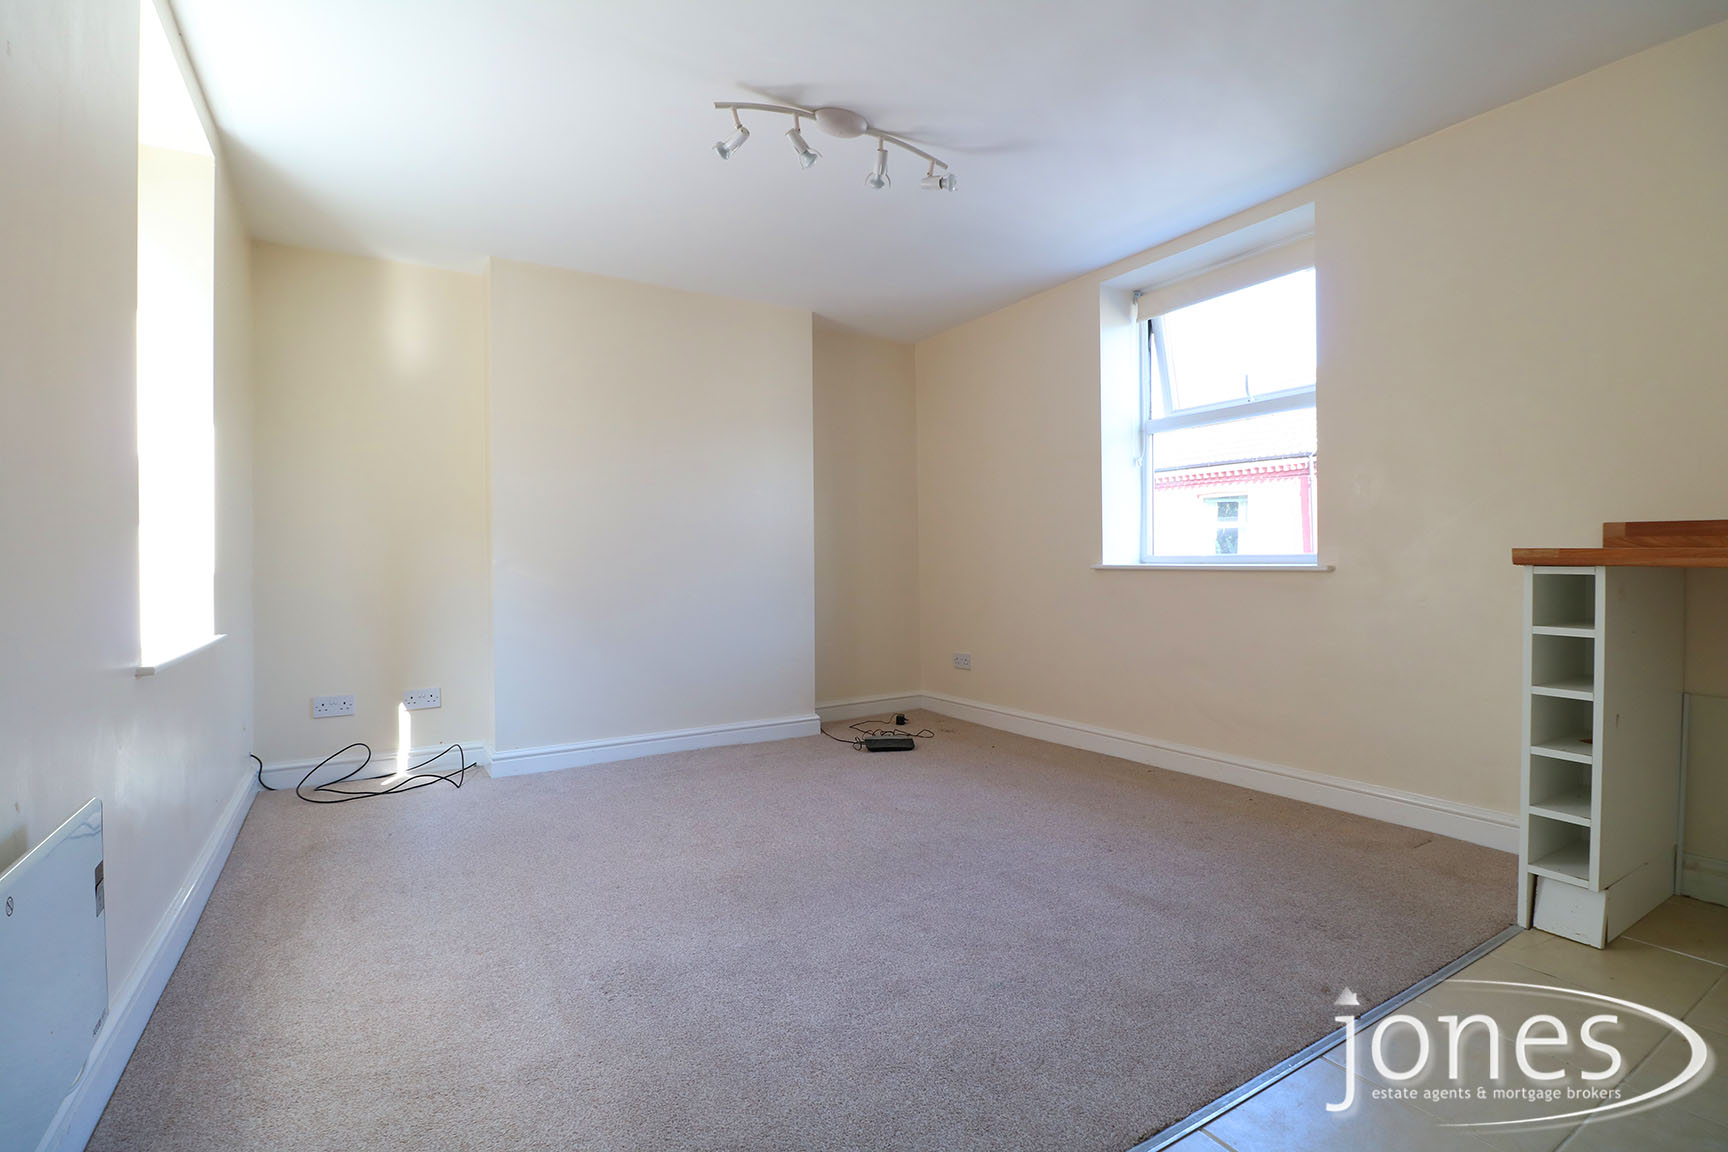 Home for Sale Let - Photo 02 Norton Mews, 359 Norton Road (OFF Dorlcote Place ), Stockton on Tees, TS20 2PH